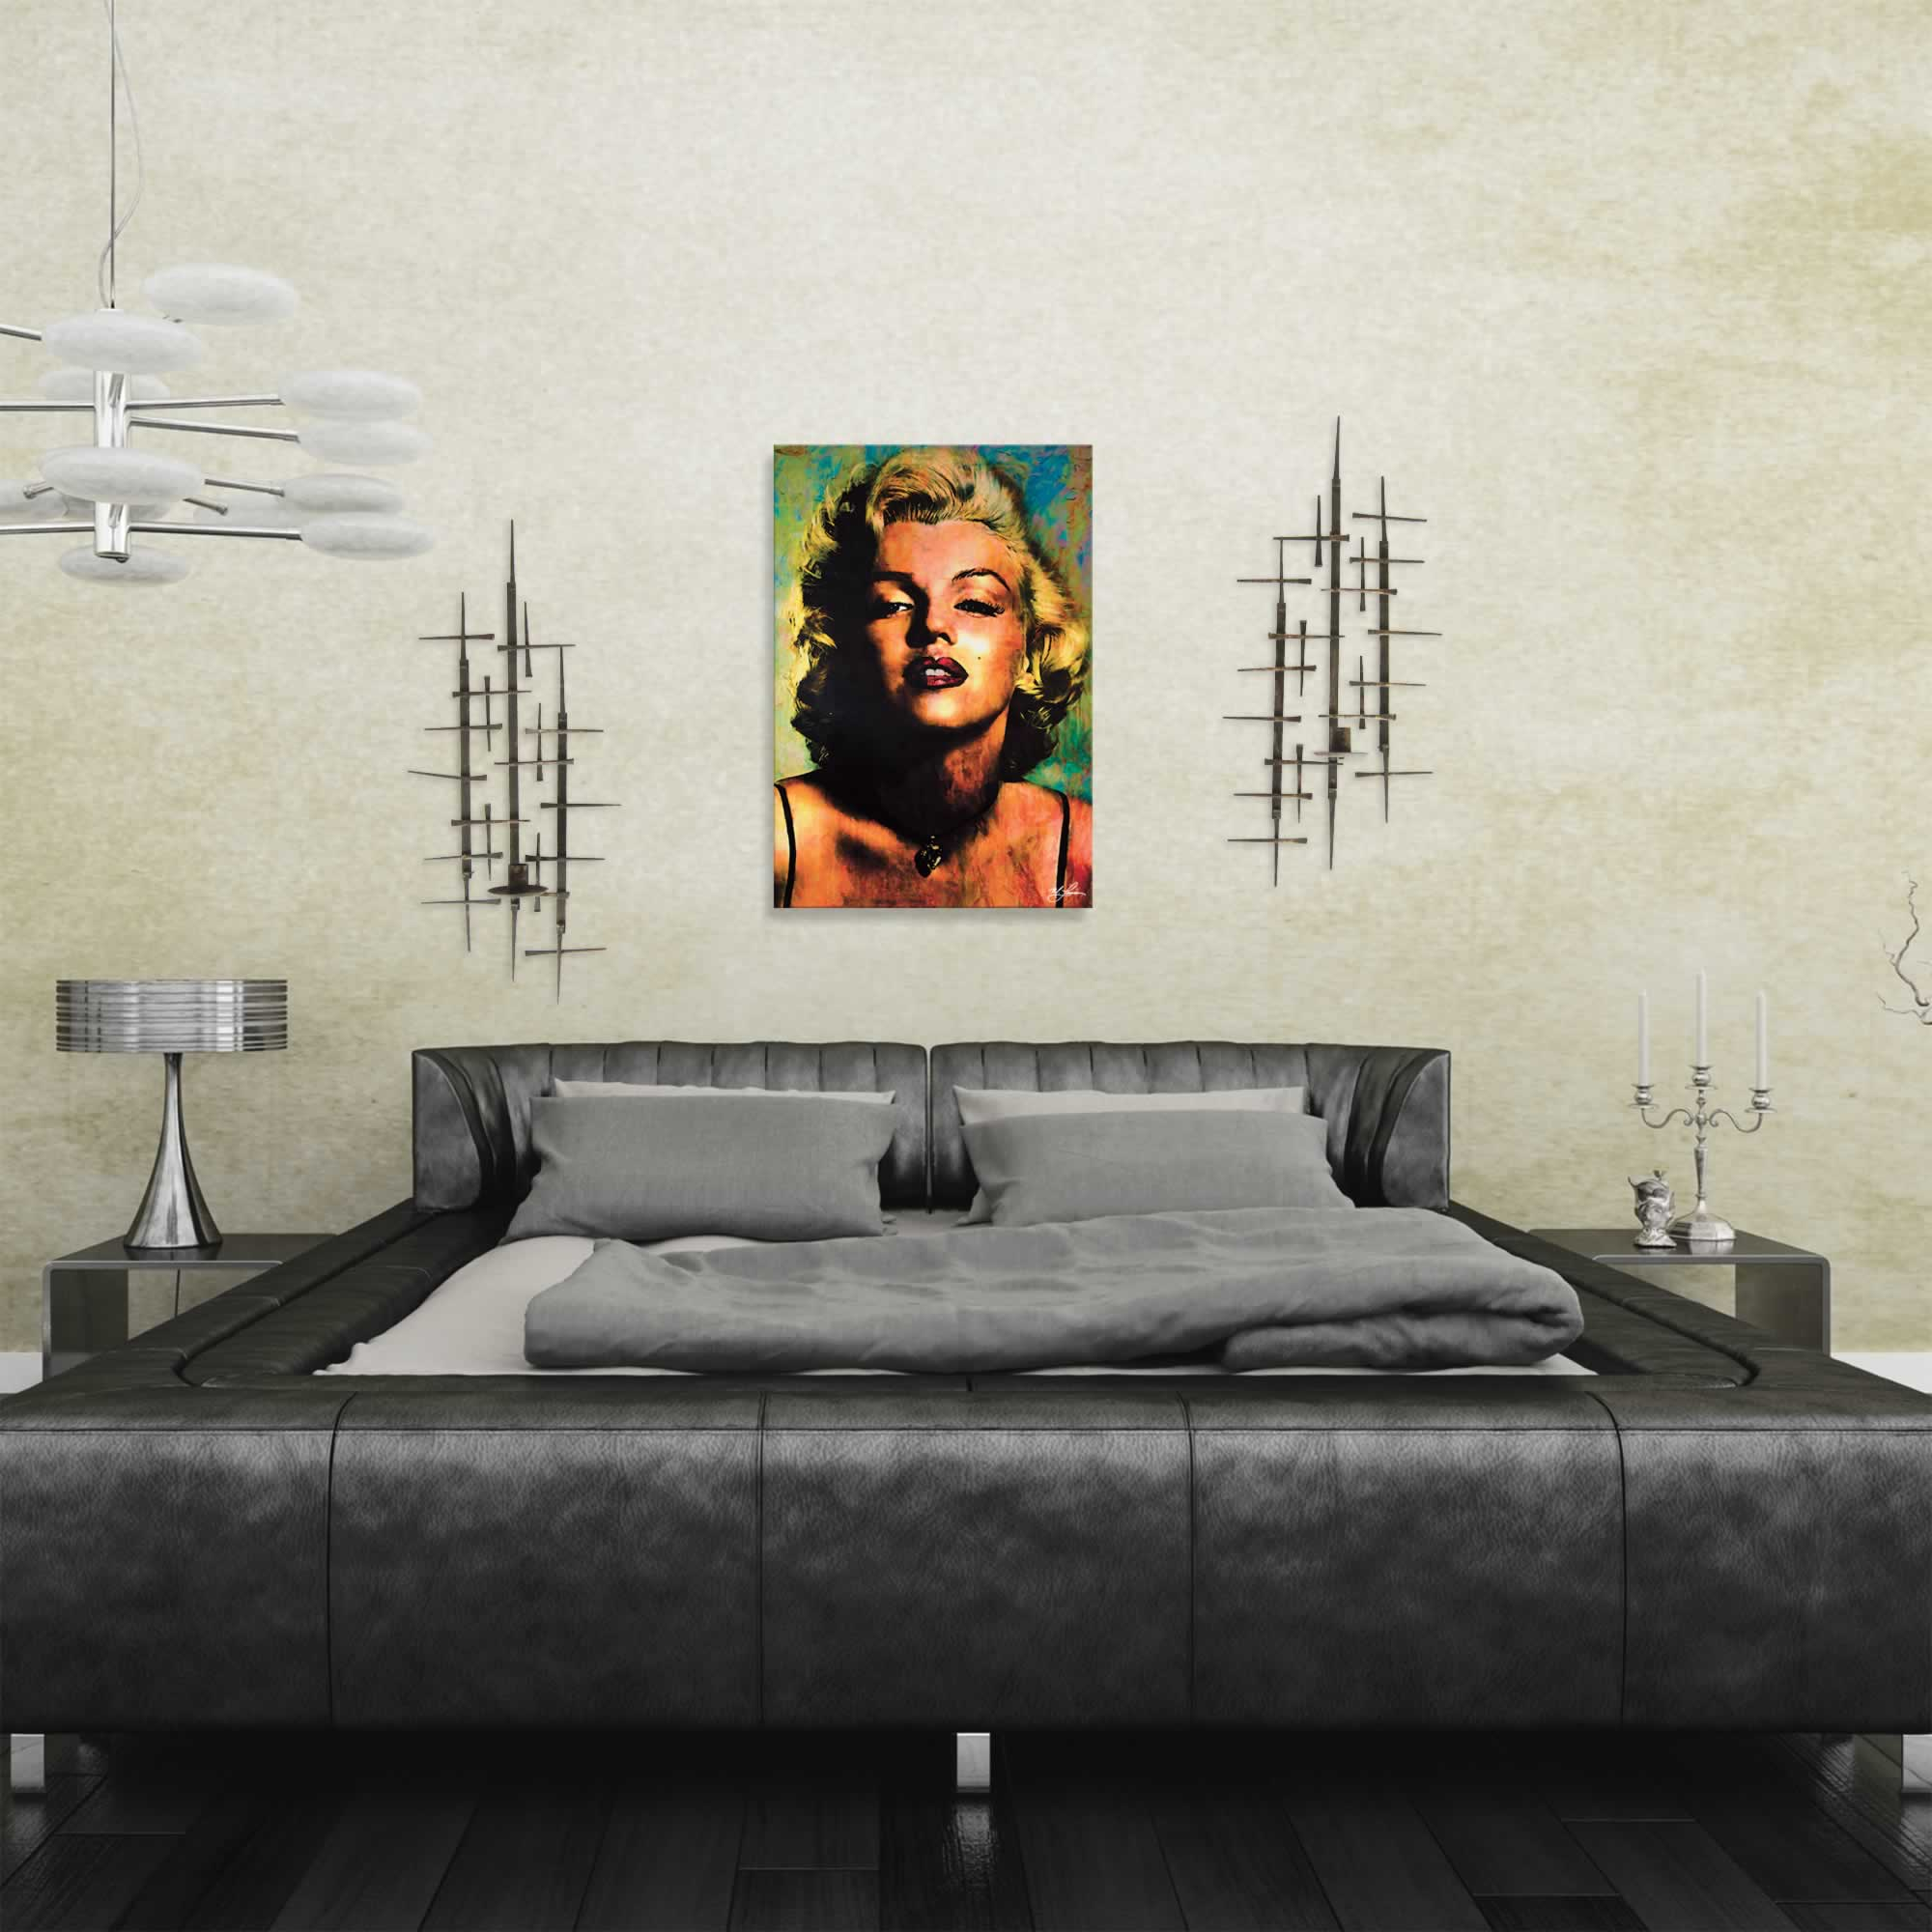 Marilyn Monroe Insatiable | Pop Art Painting by Mark Lewis, Signed & Numbered Limited Edition - ML0023